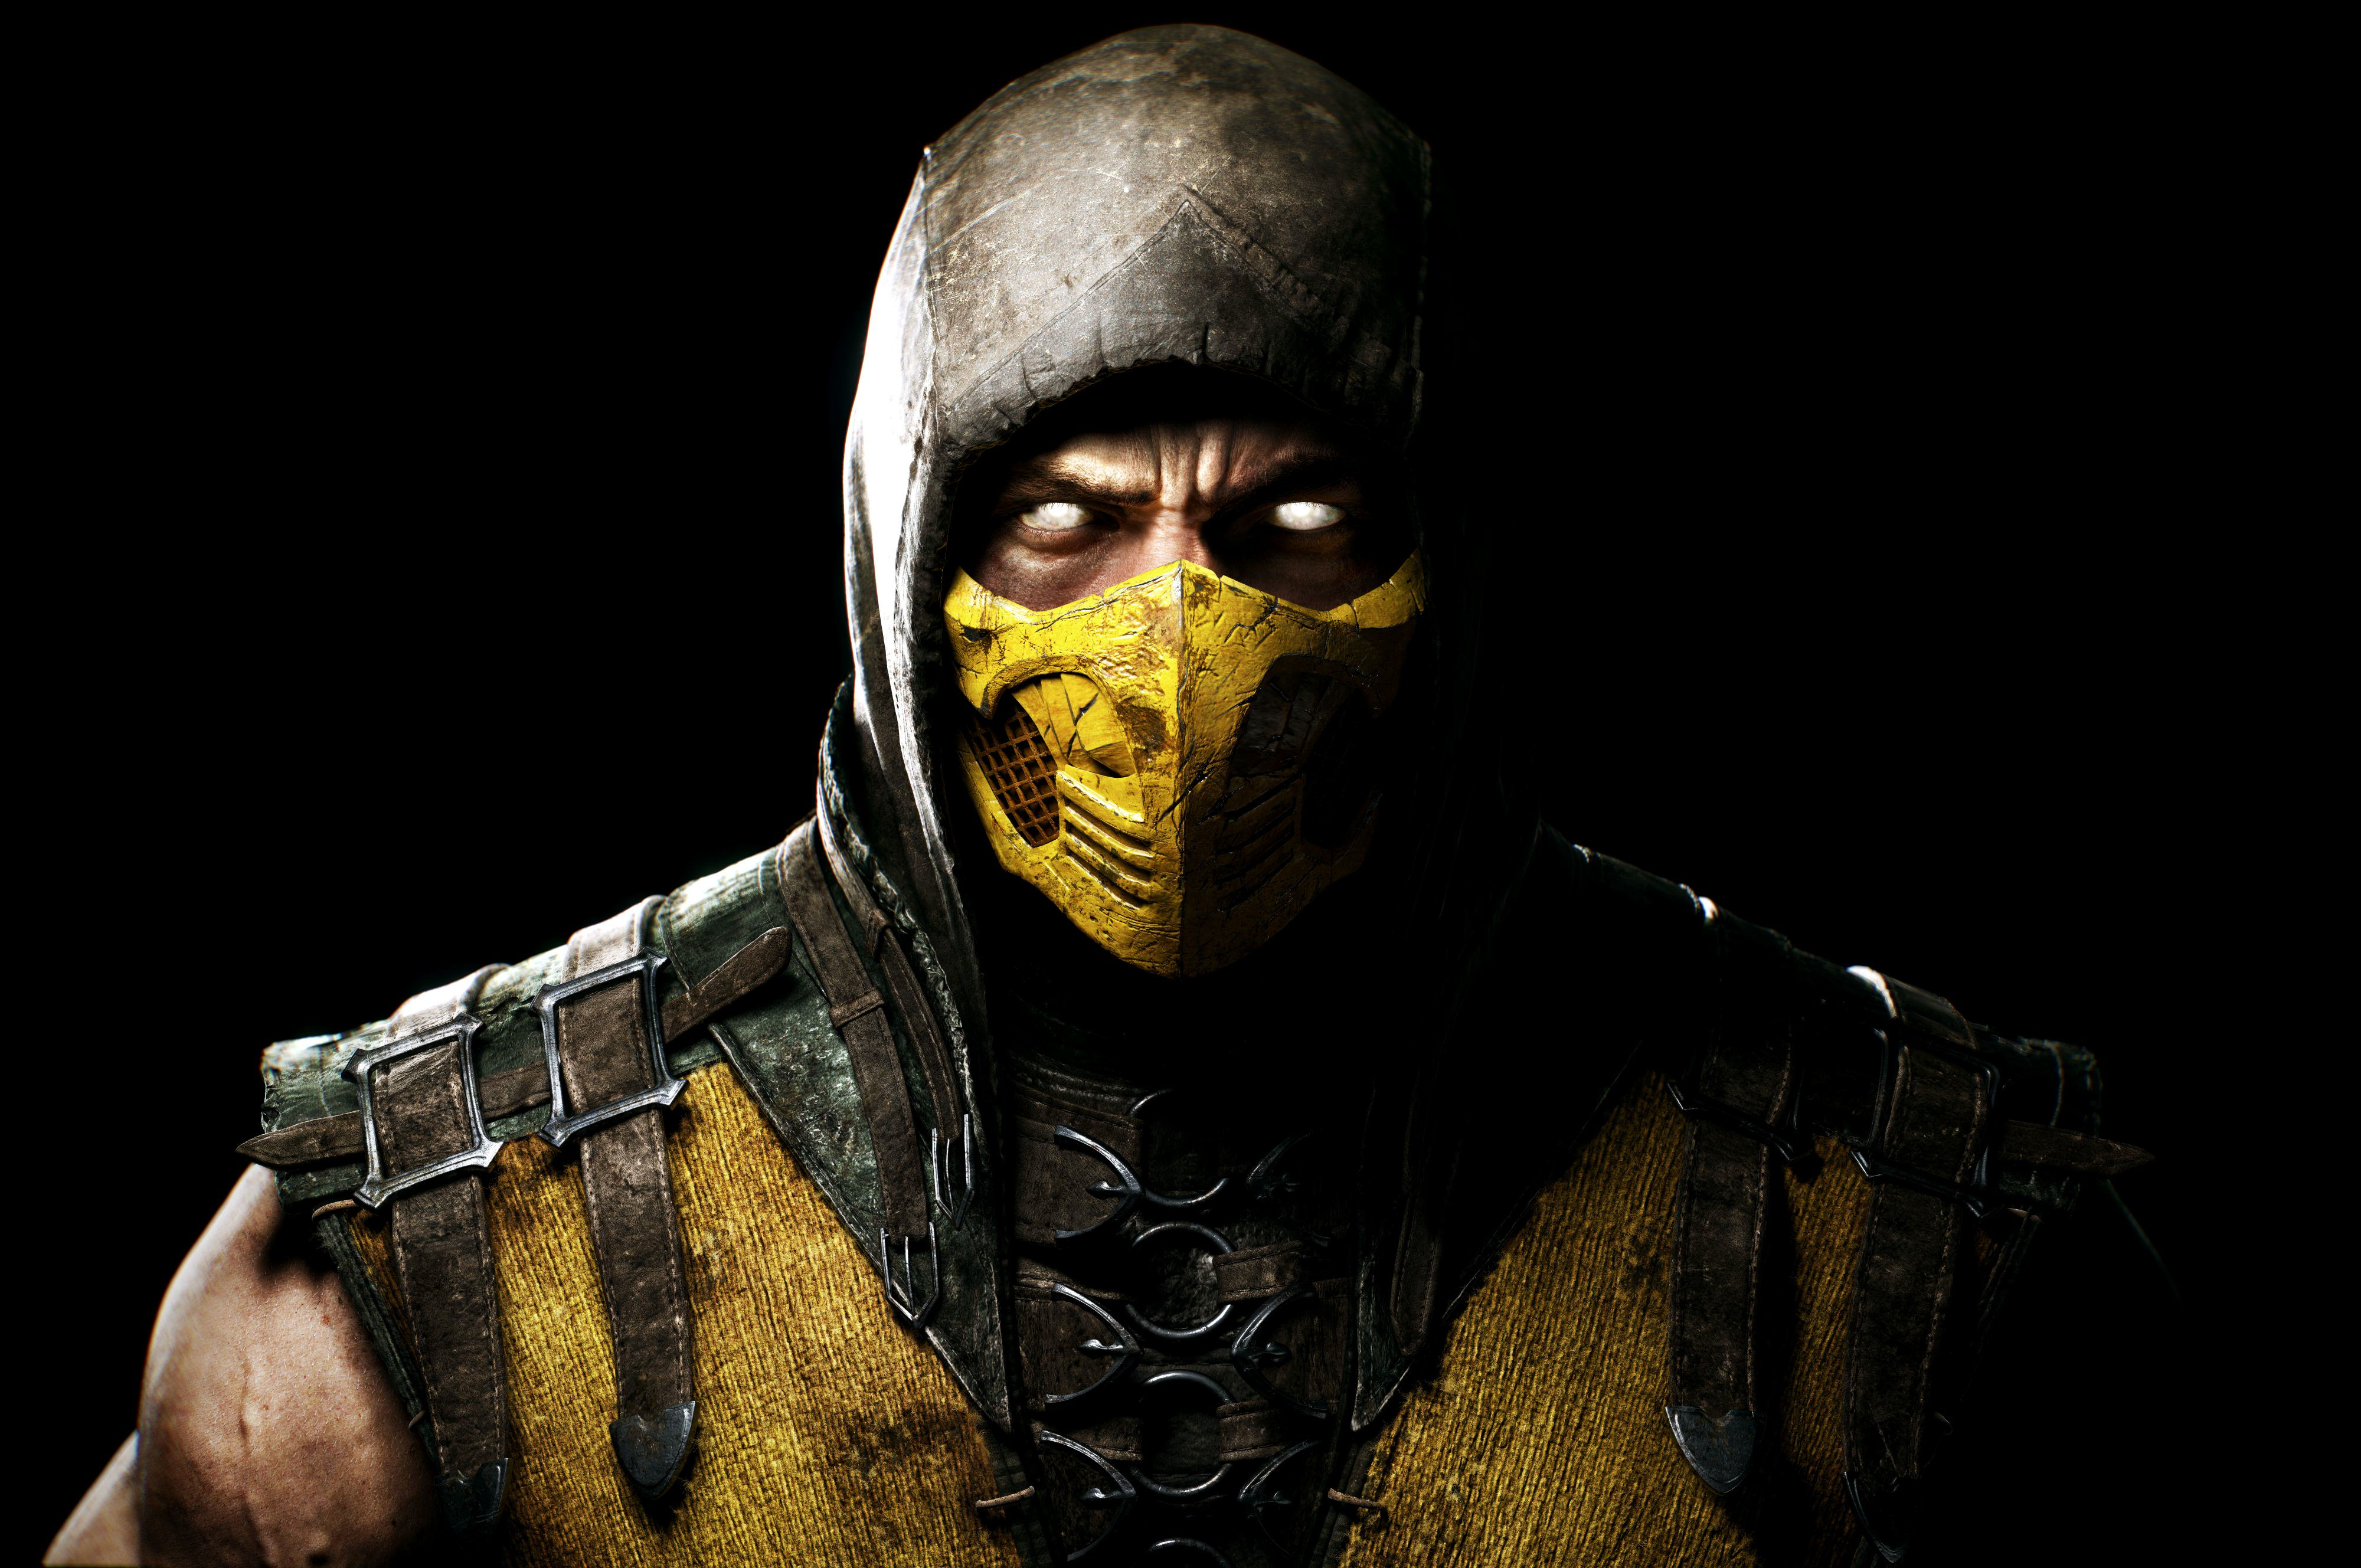 mortalkombatx Facebook Reveal The 10 Most Talked About Games Of 2015